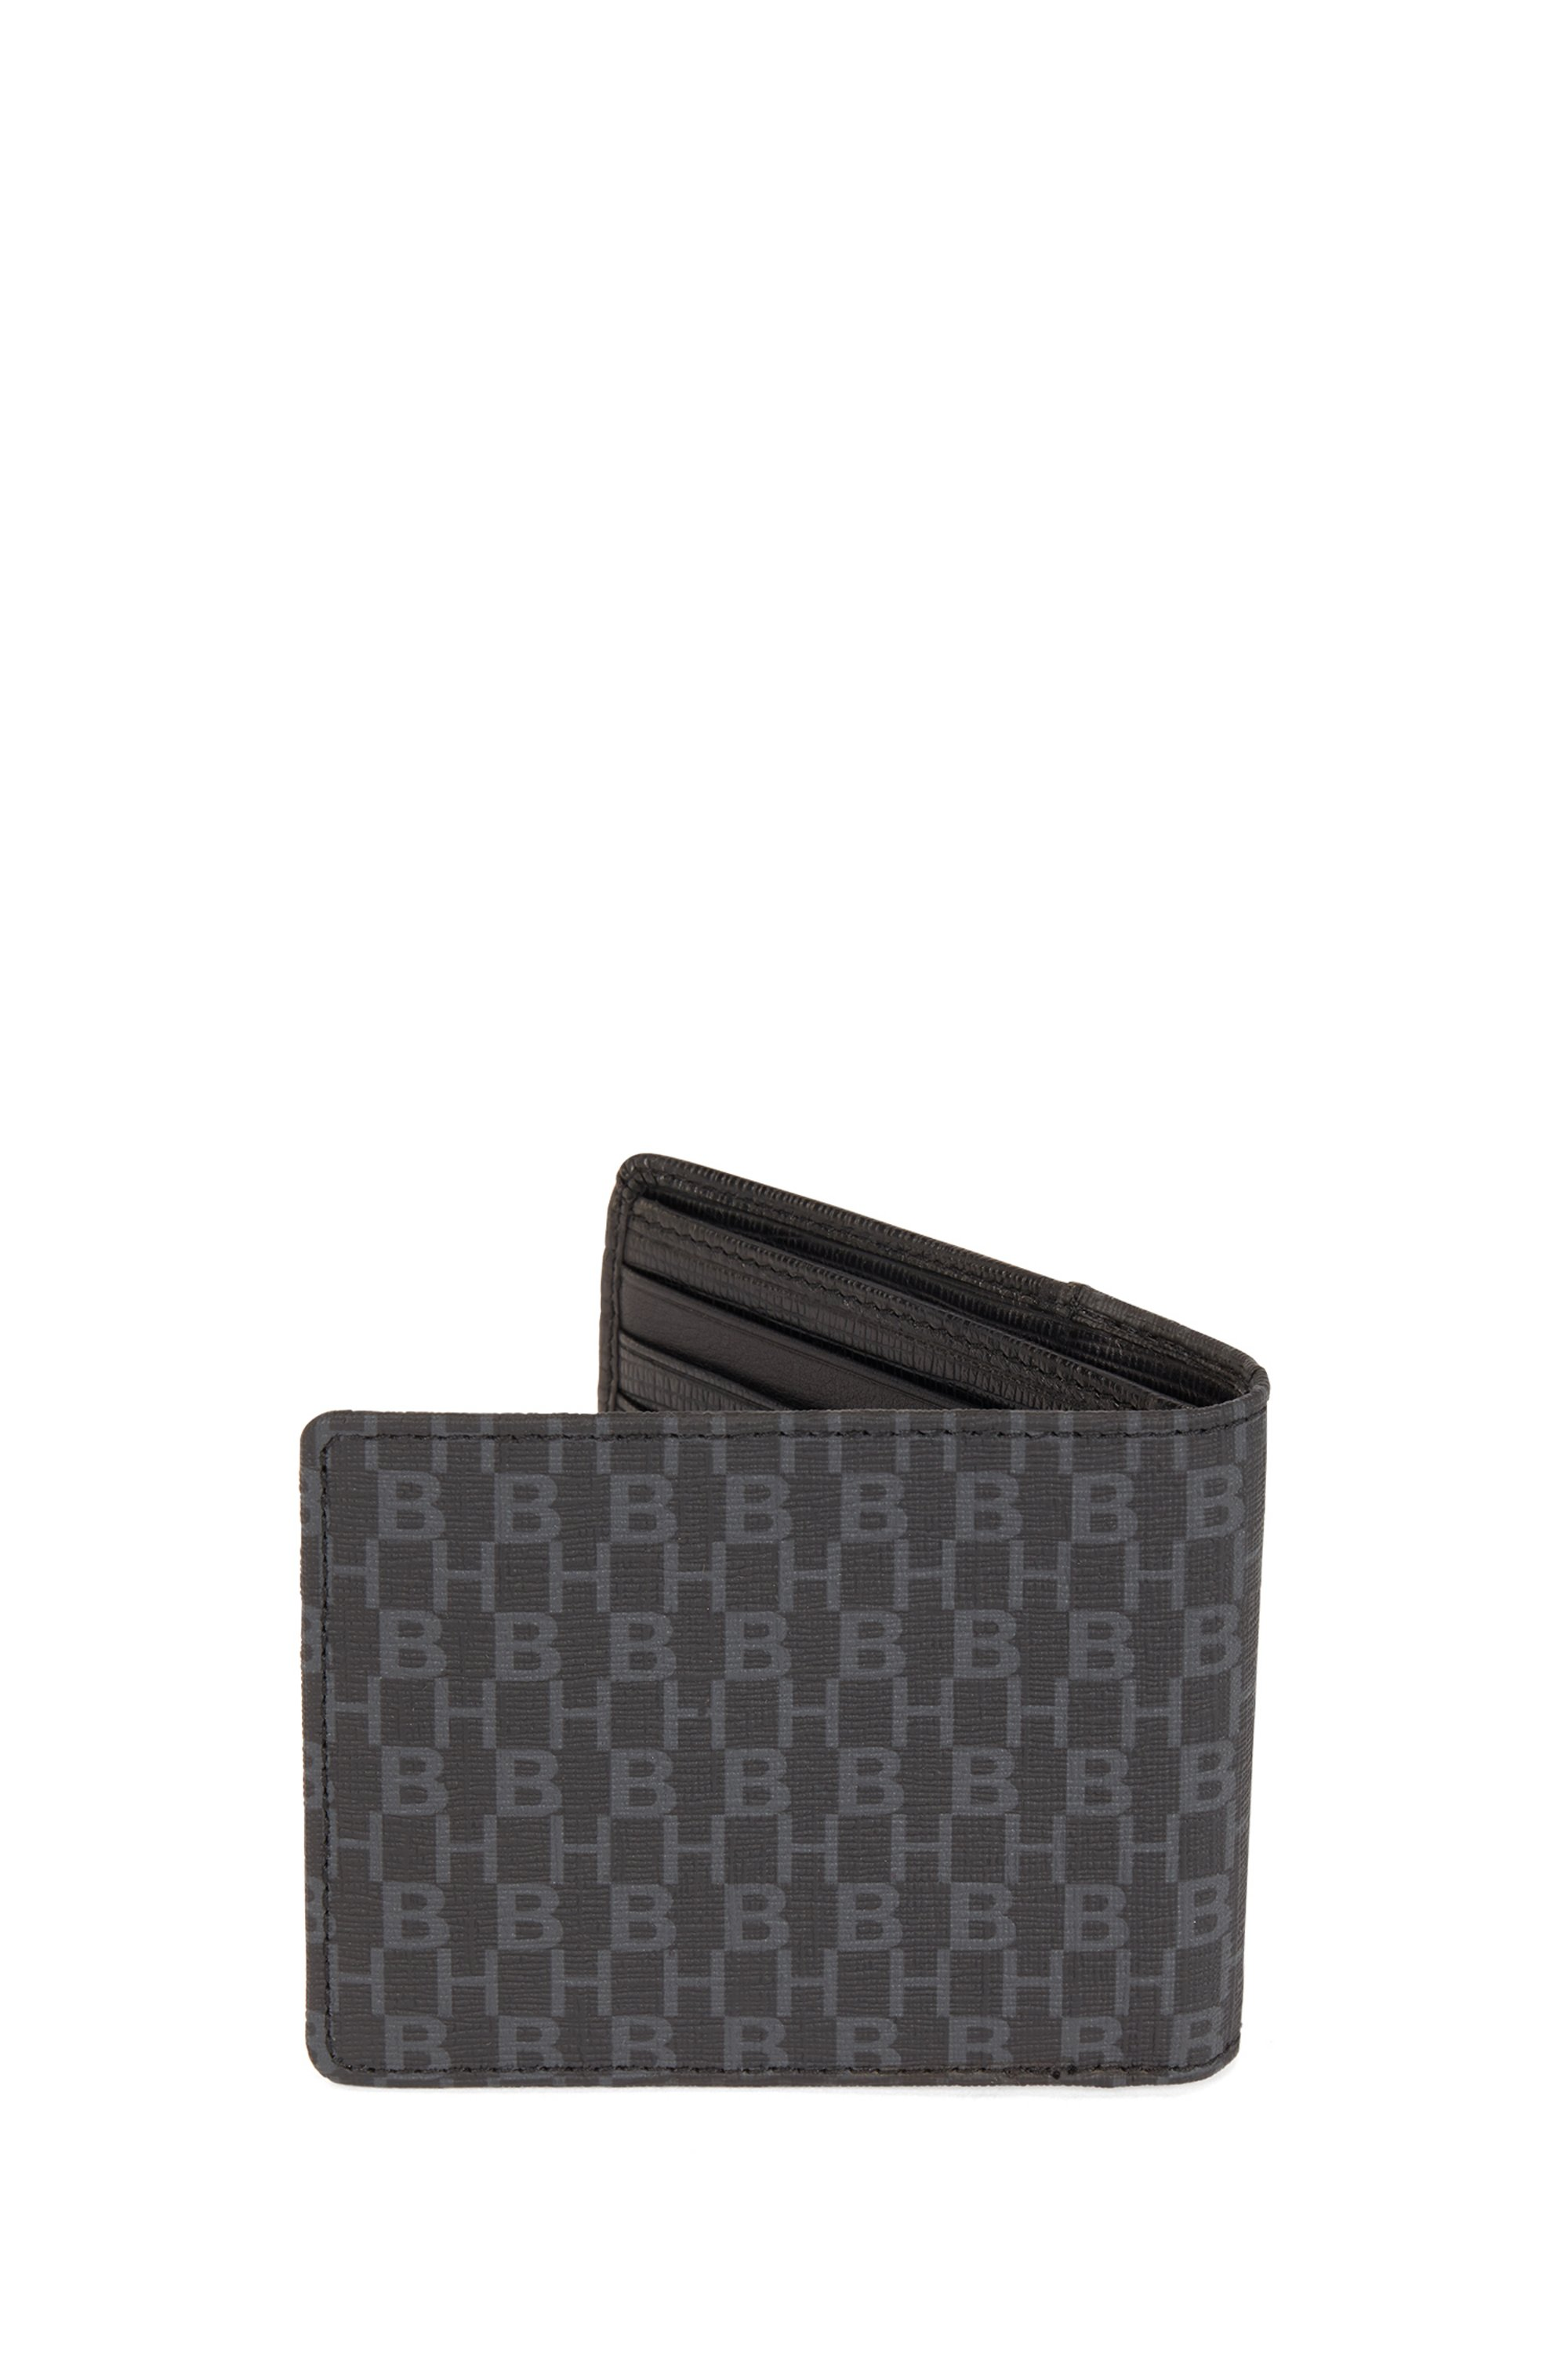 Monogram-print wallet with embossed leather trims